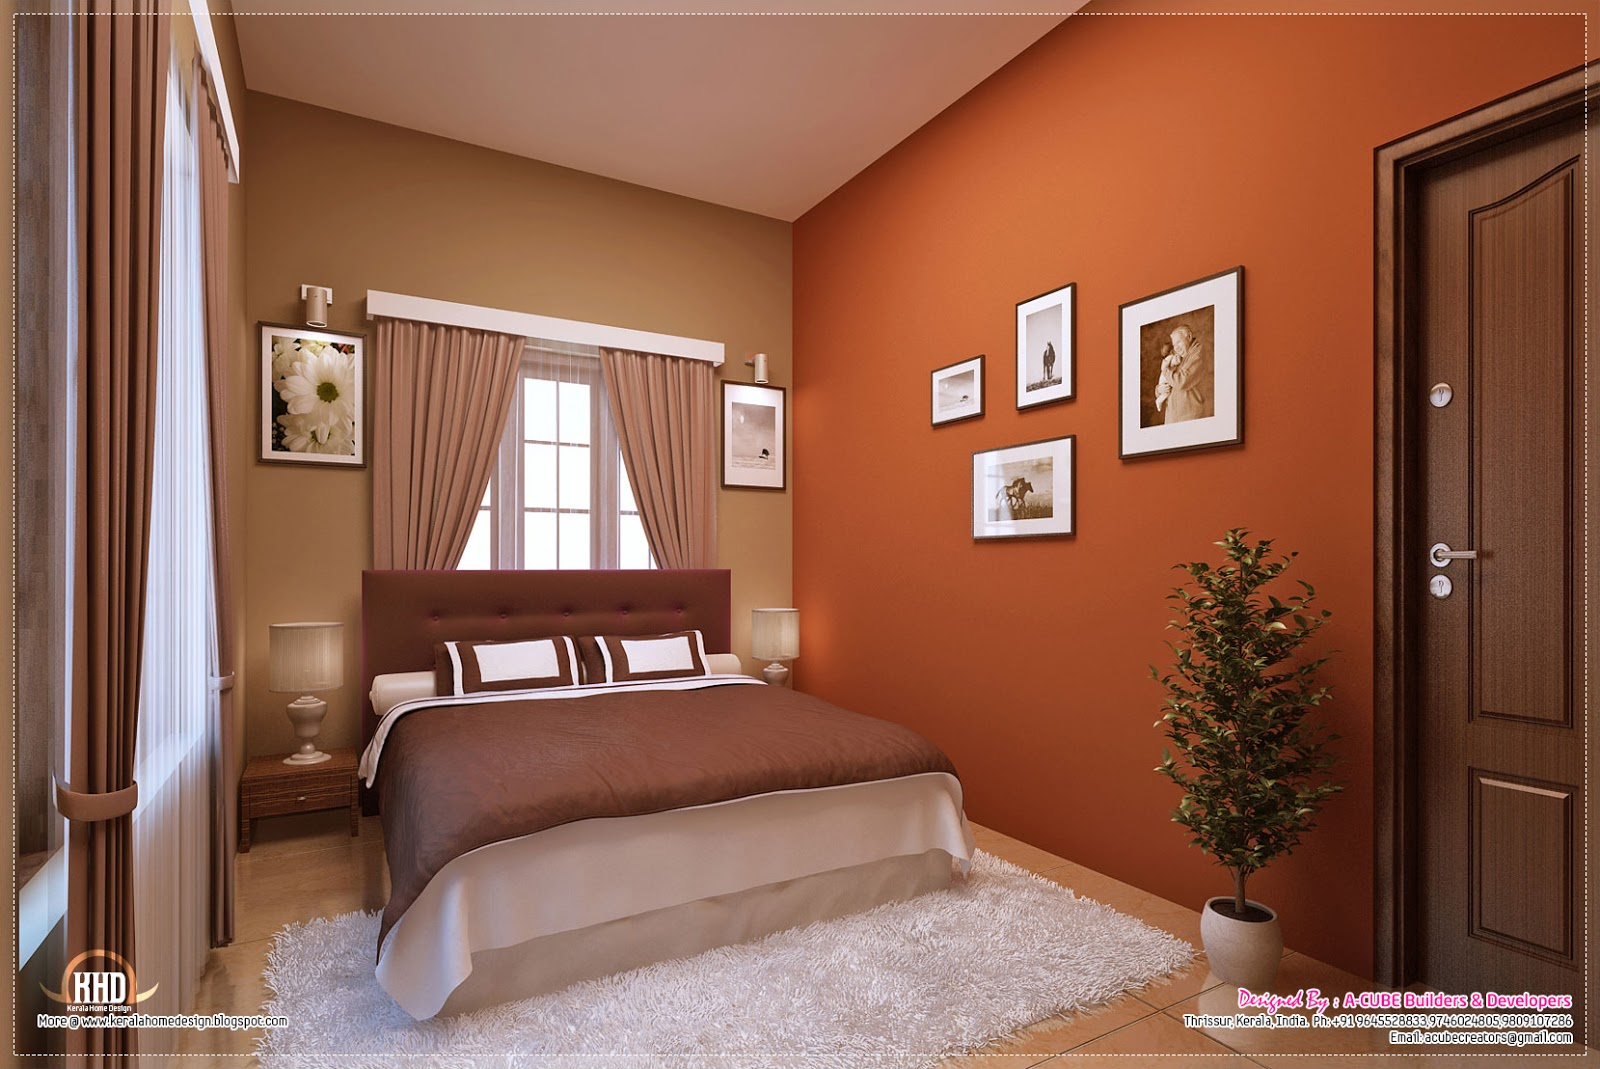 Awesome interior decoration ideas kerala home design and for Small house decoration images